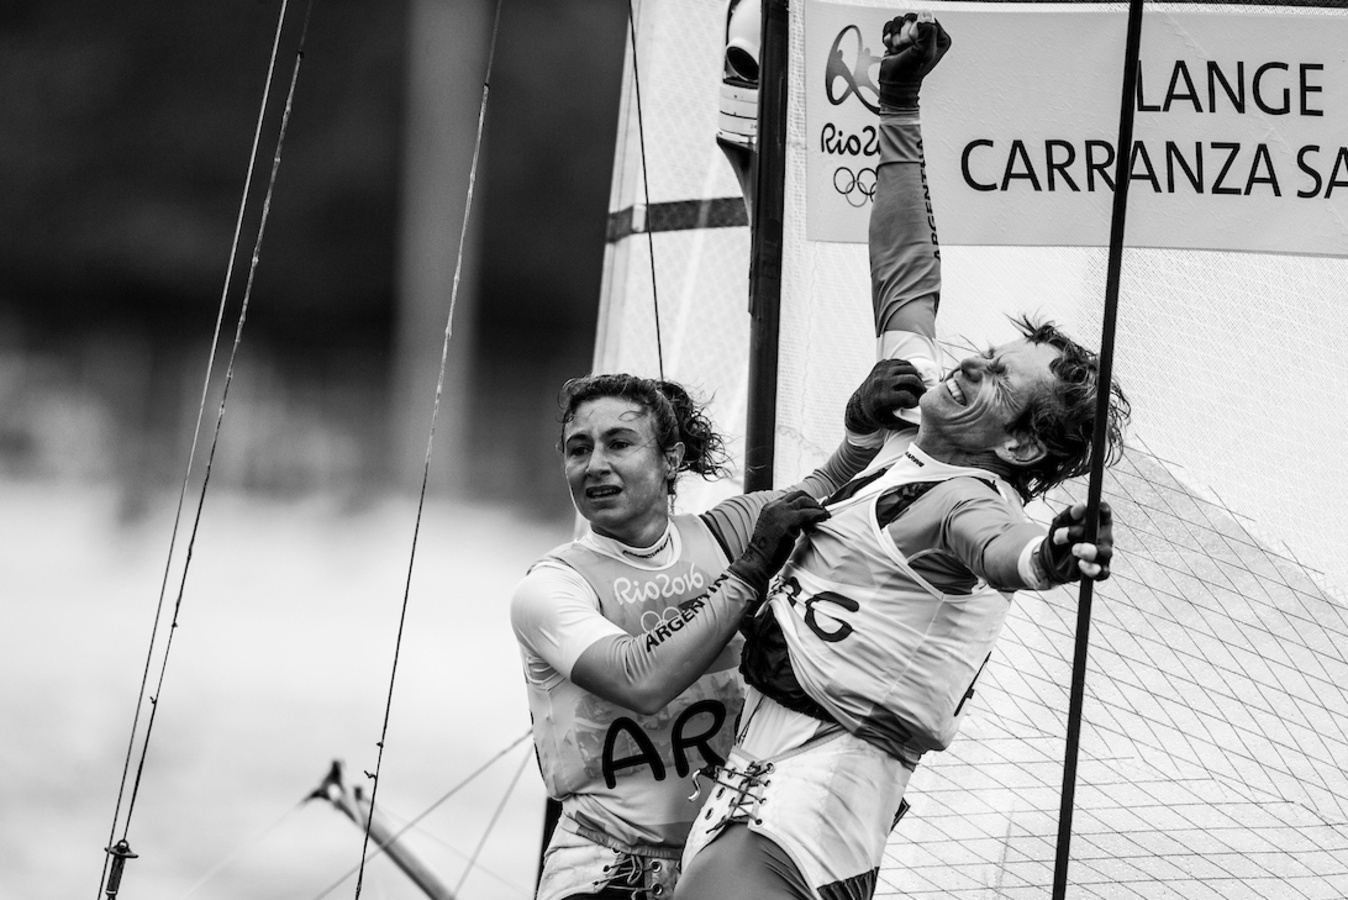 VIDEO: On this day Santiago Lange and Cecilia Carranza Saroli win Rio 2016 gold